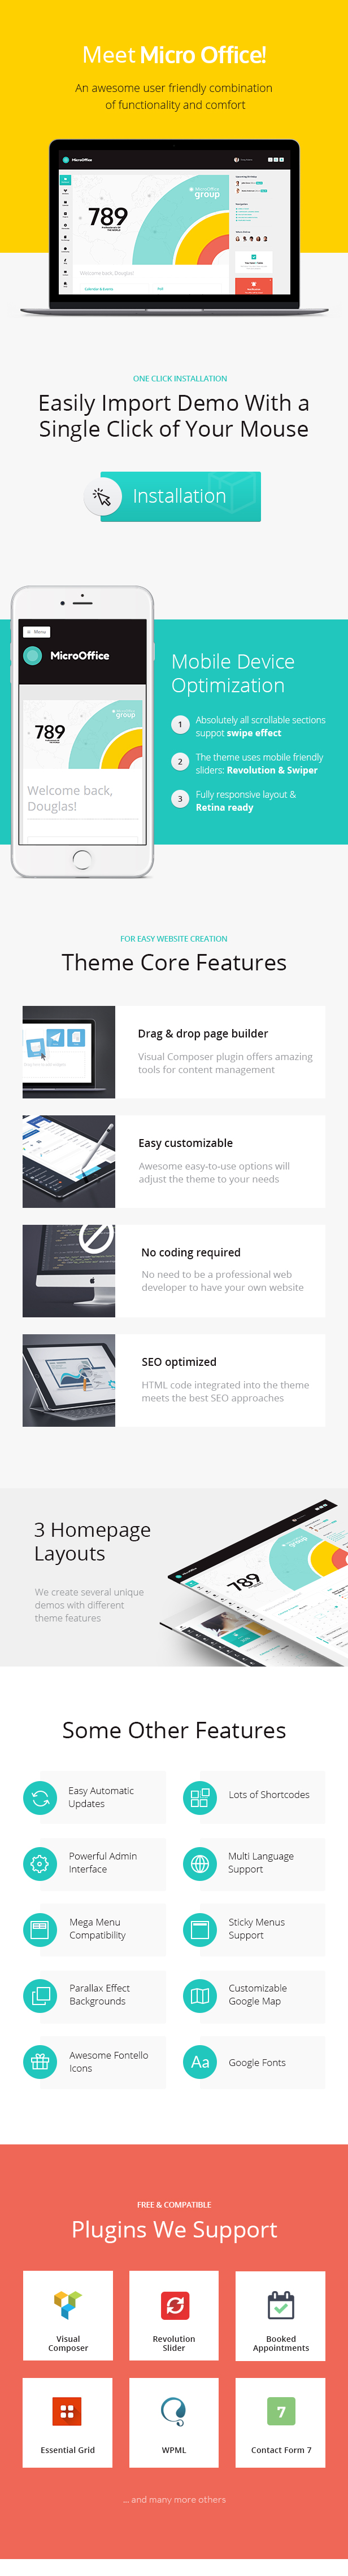 Micro Office | Extranet & Intranet WordPress Theme - 3